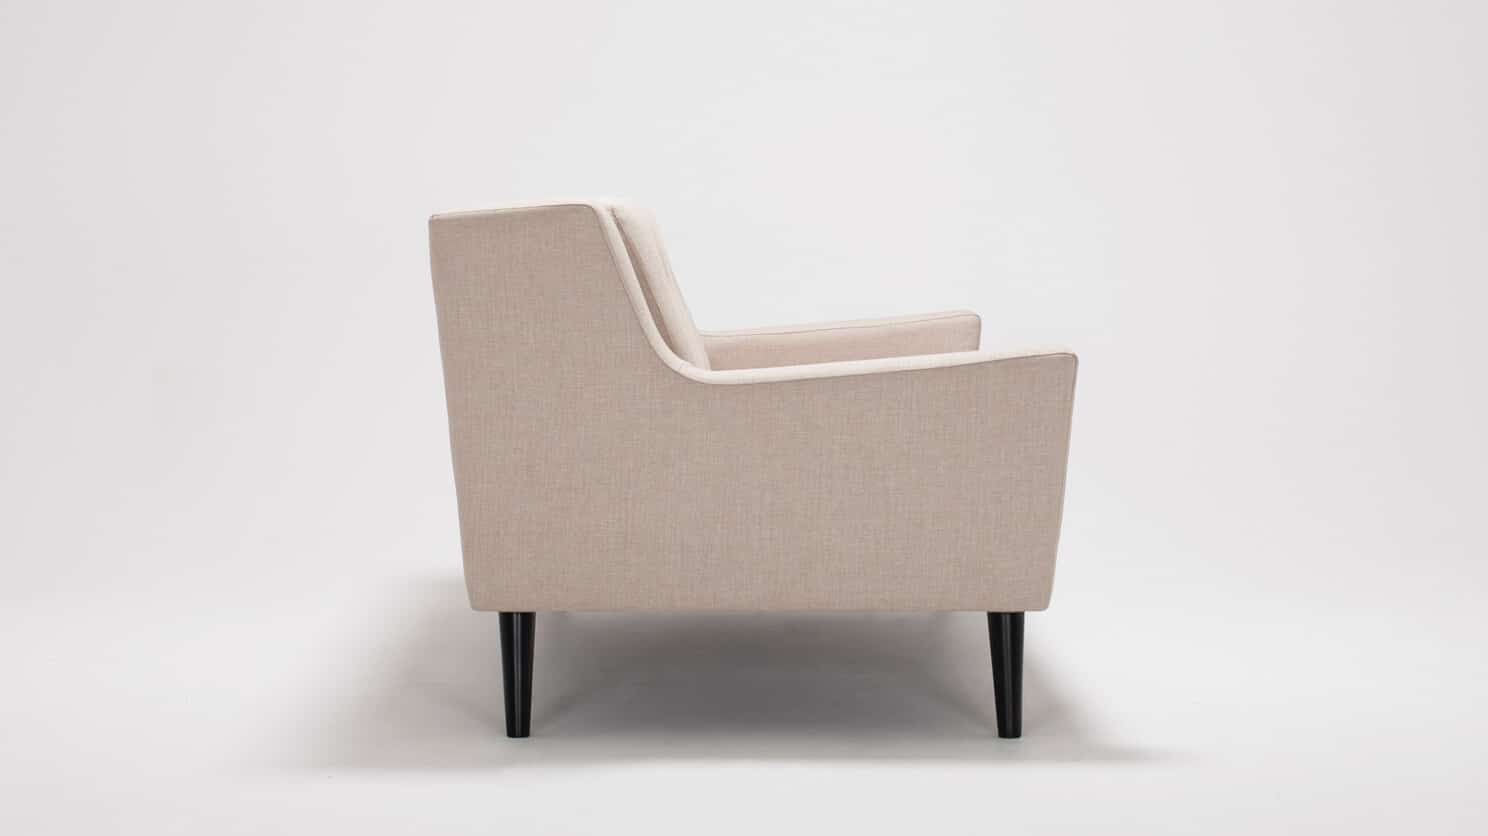 30104 01 06 sofa elise polo oyster side view